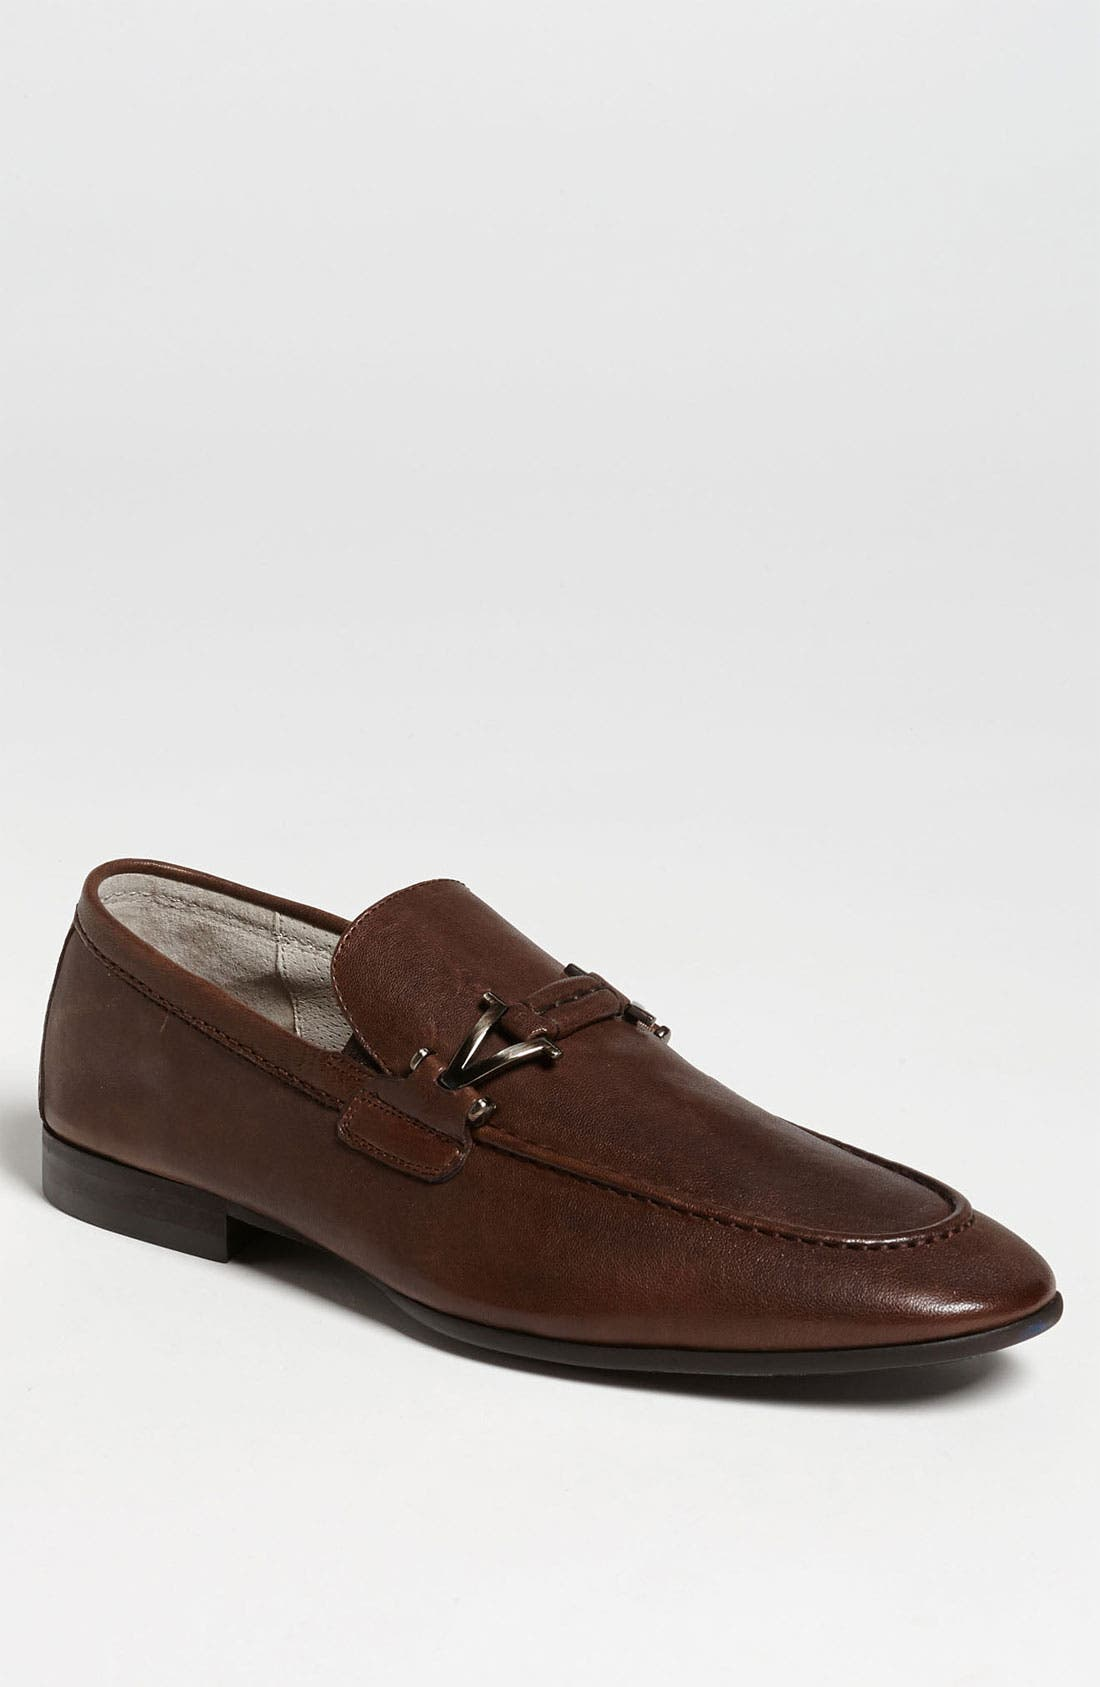 Alternate Image 1 Selected - Vince Camuto 'Castell' Leather Bit Loafer